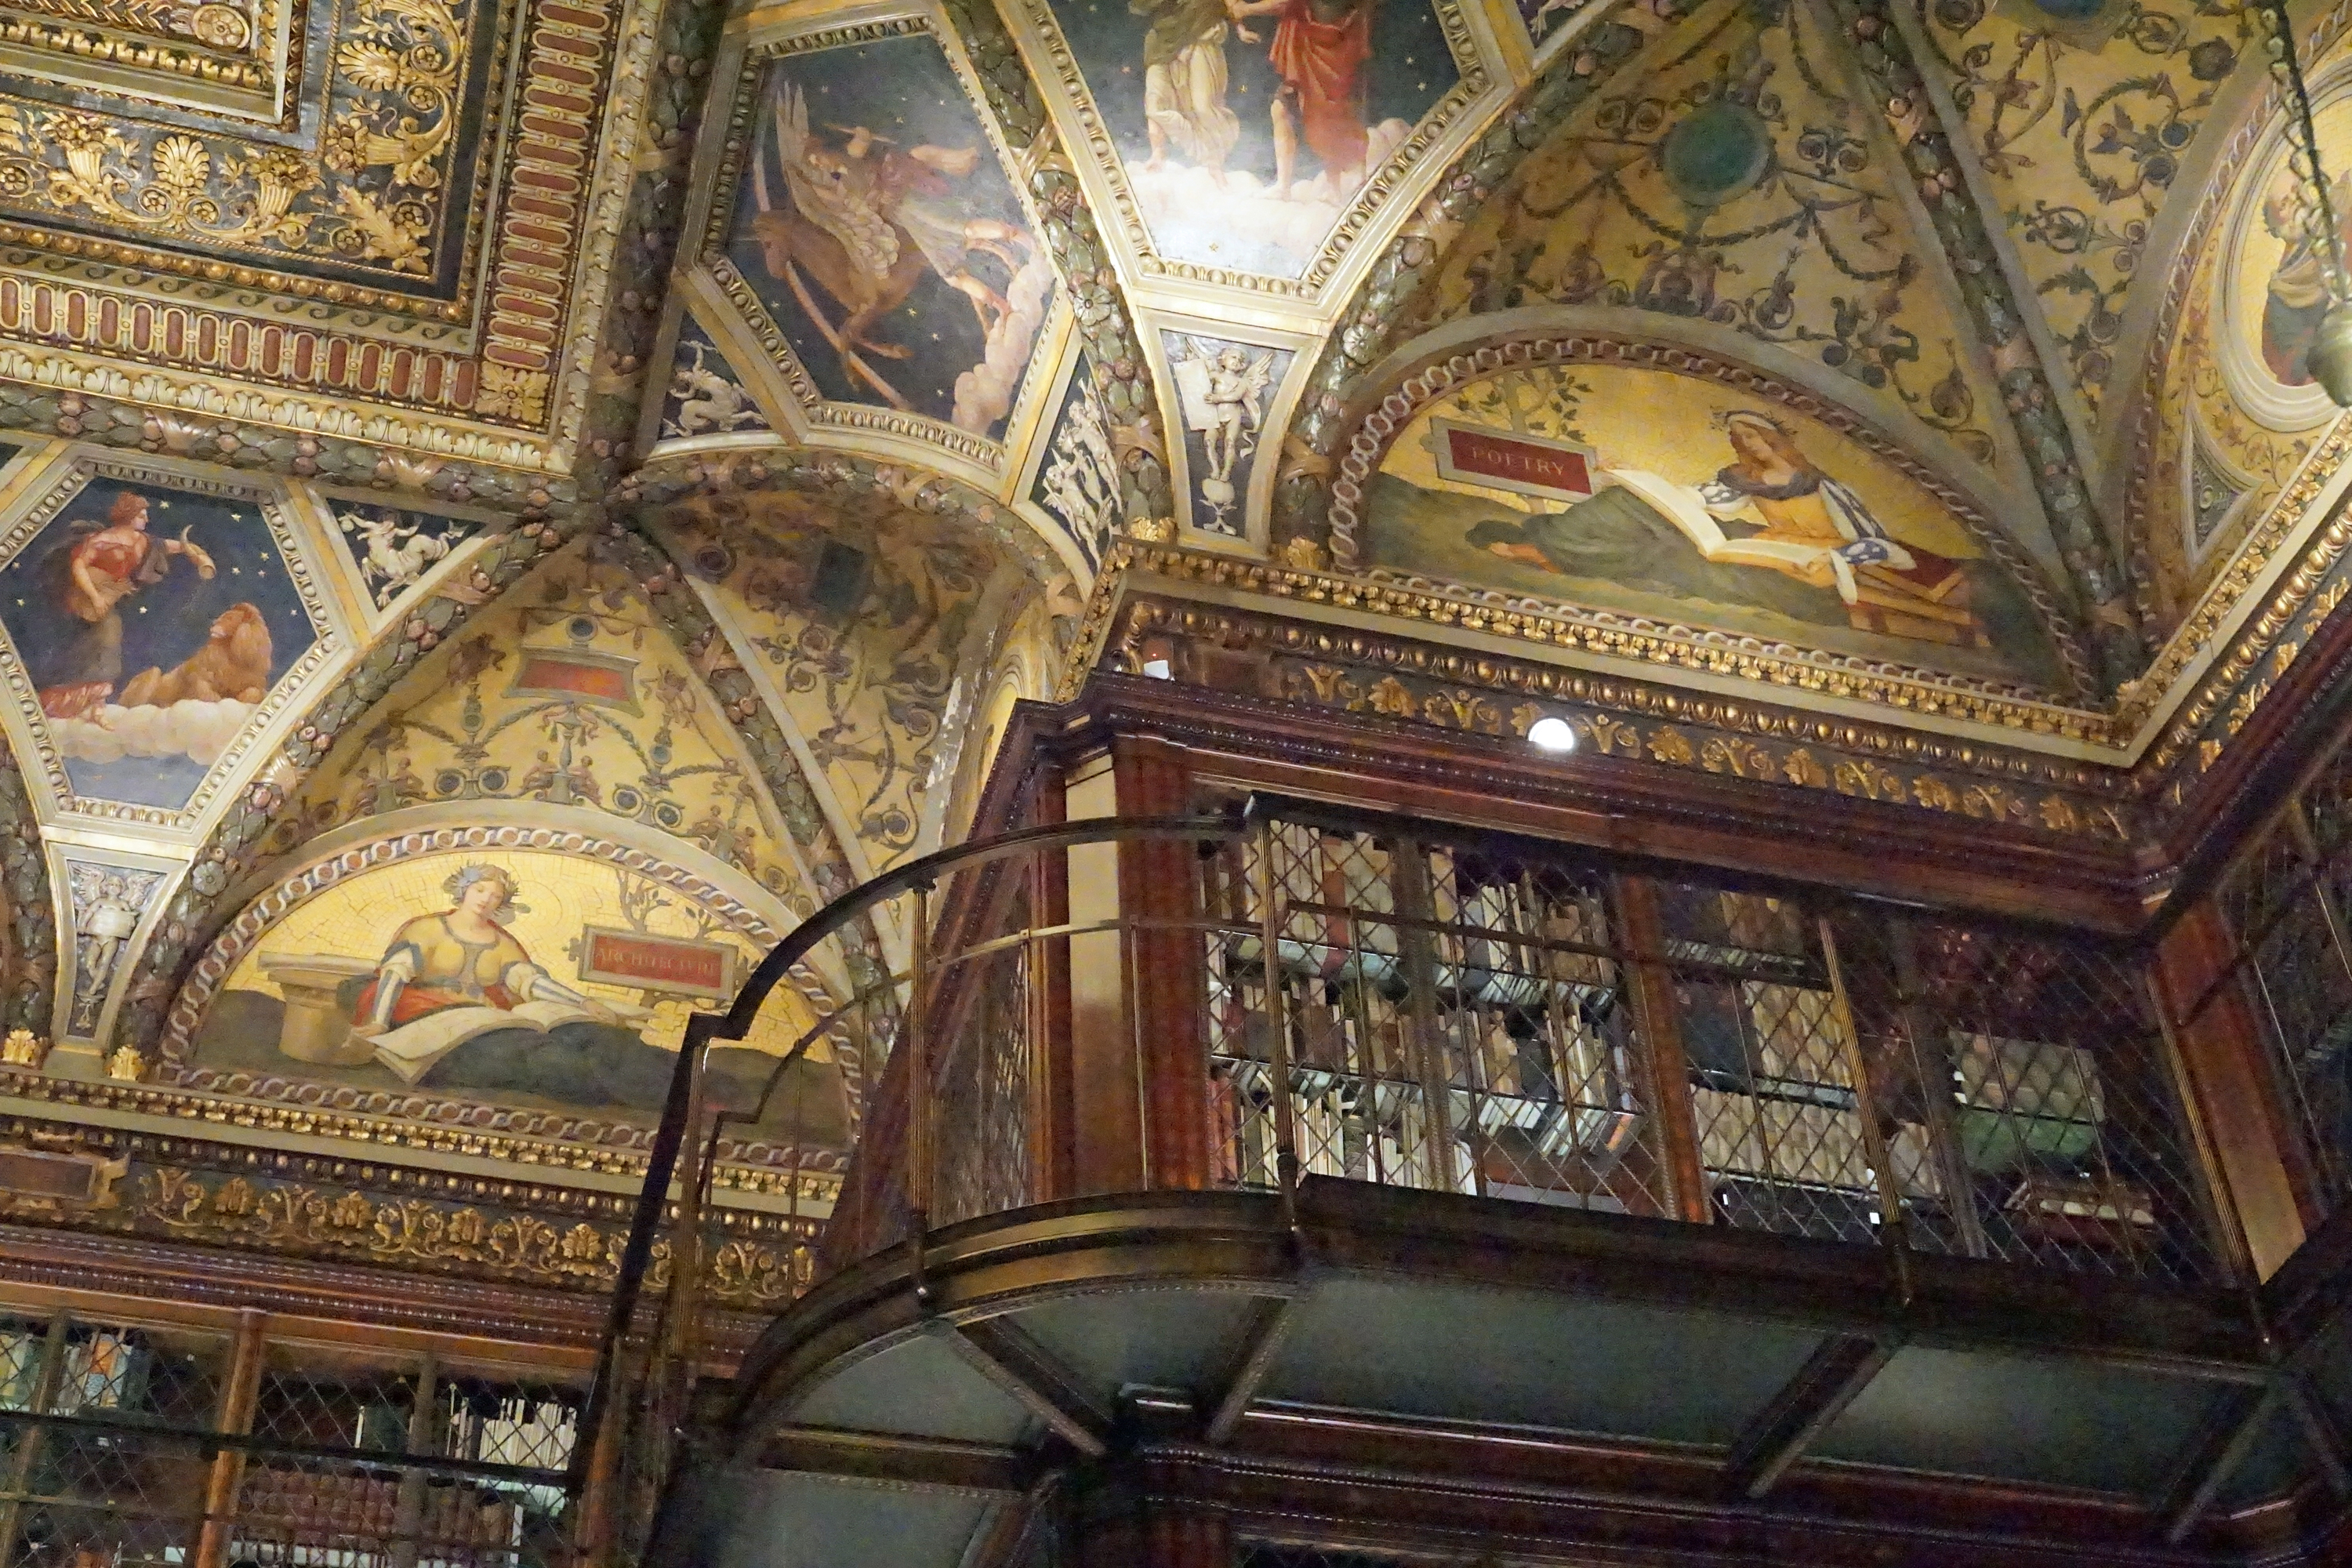 My Research Trip to the Morgan Library and Museum: The Books